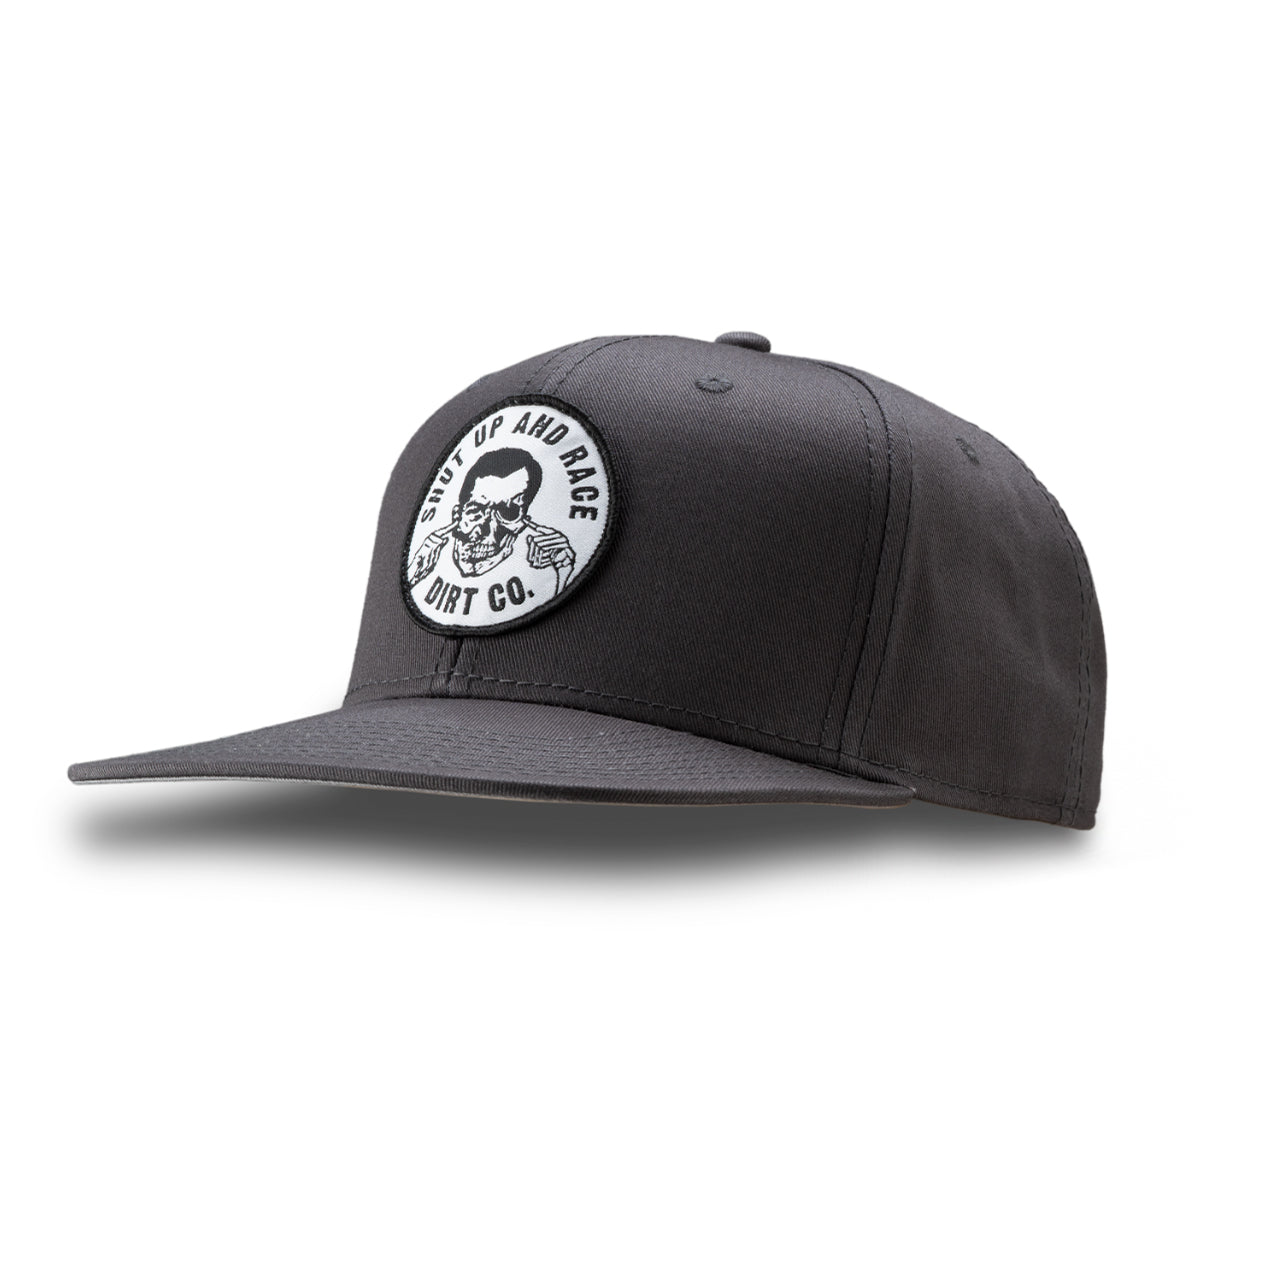 Shut Up And Race Snap Back 6 Panel Twill Hat (Gray)